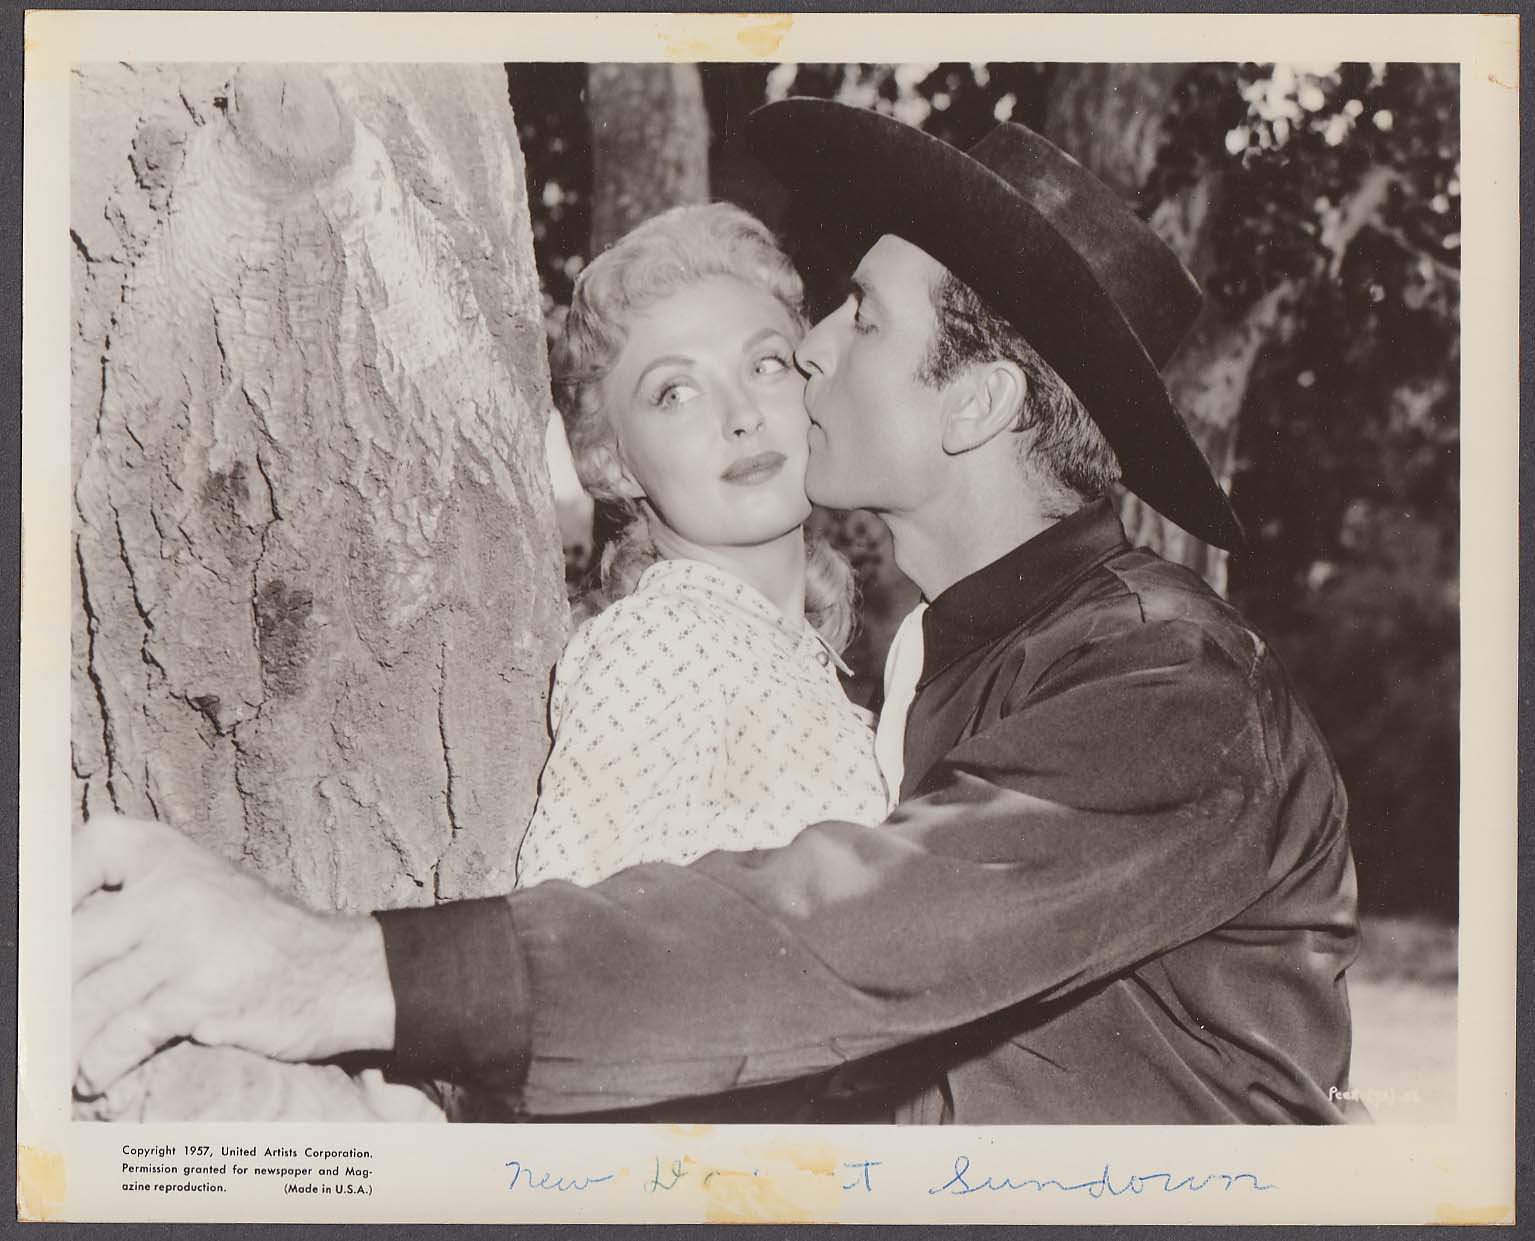 George Montgomery kissing Randy Stuart Man from God's Country 8x10 photo 1957